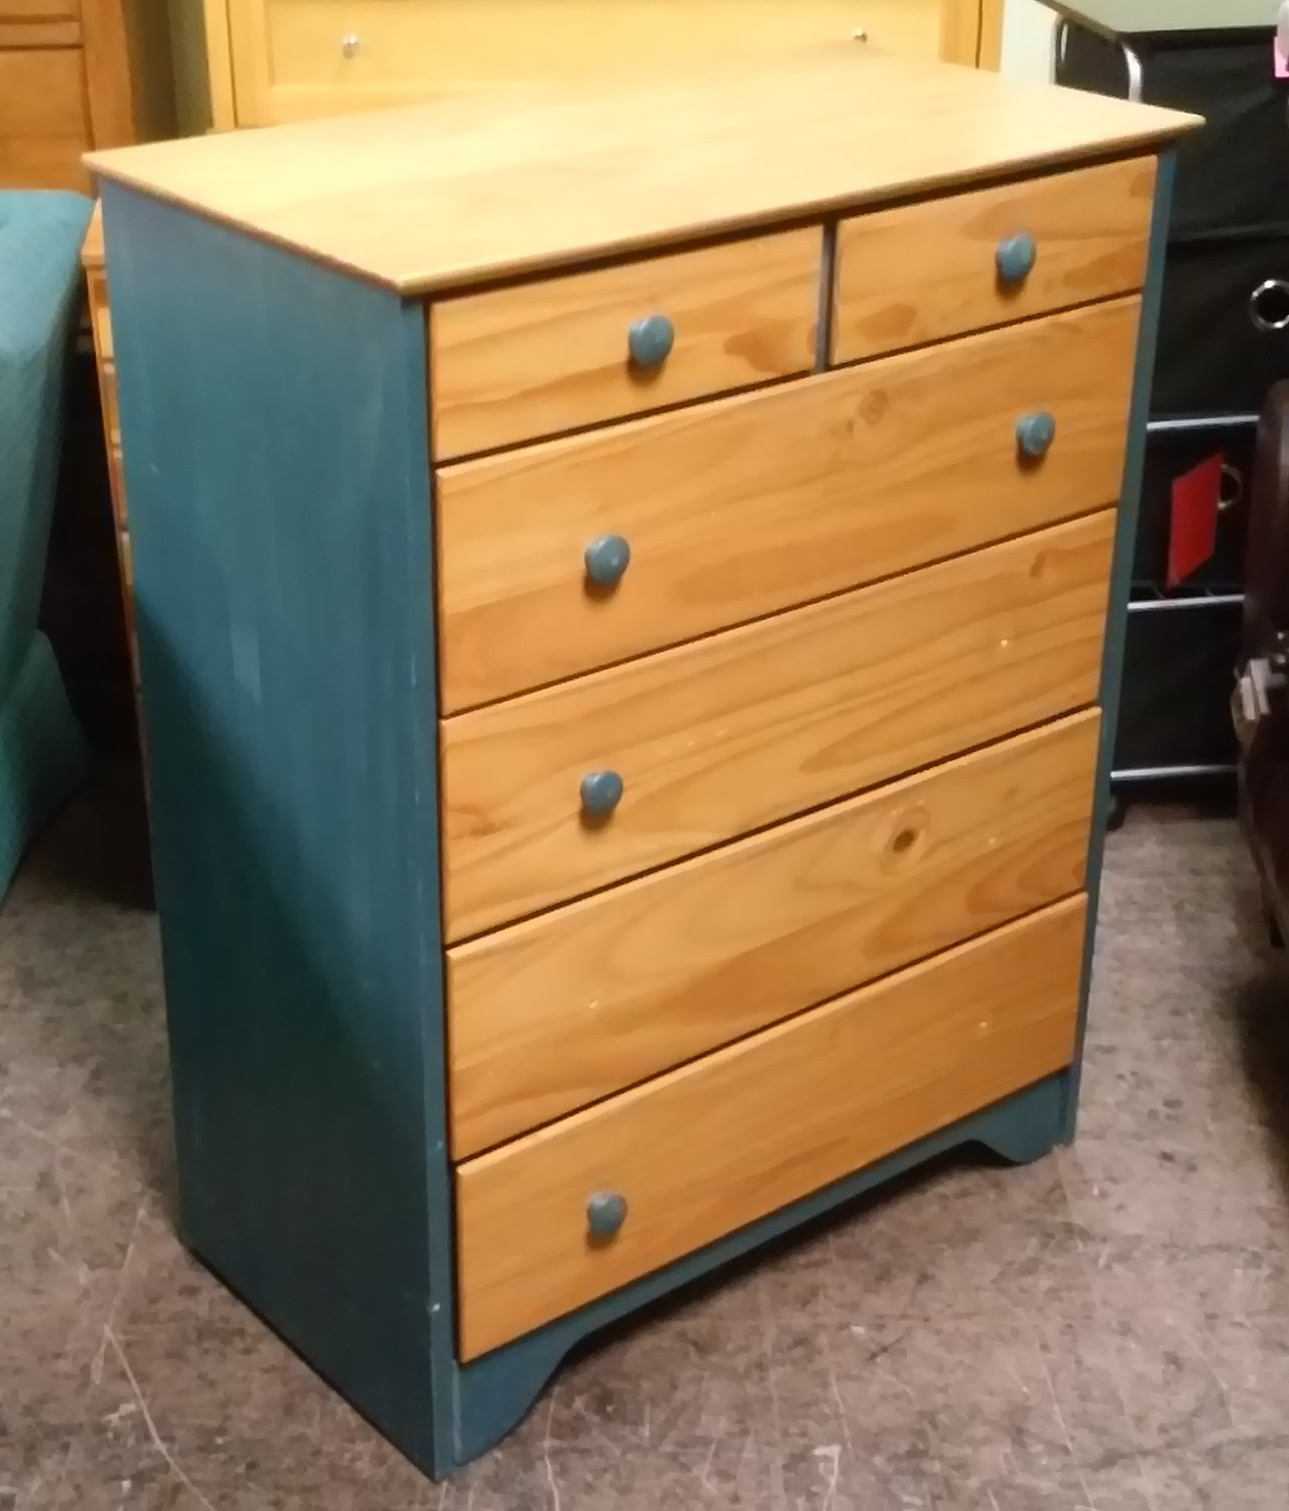 UHURU FURNITURE & COLLECTIBLES SOLD 6 Drawer Painted Pine